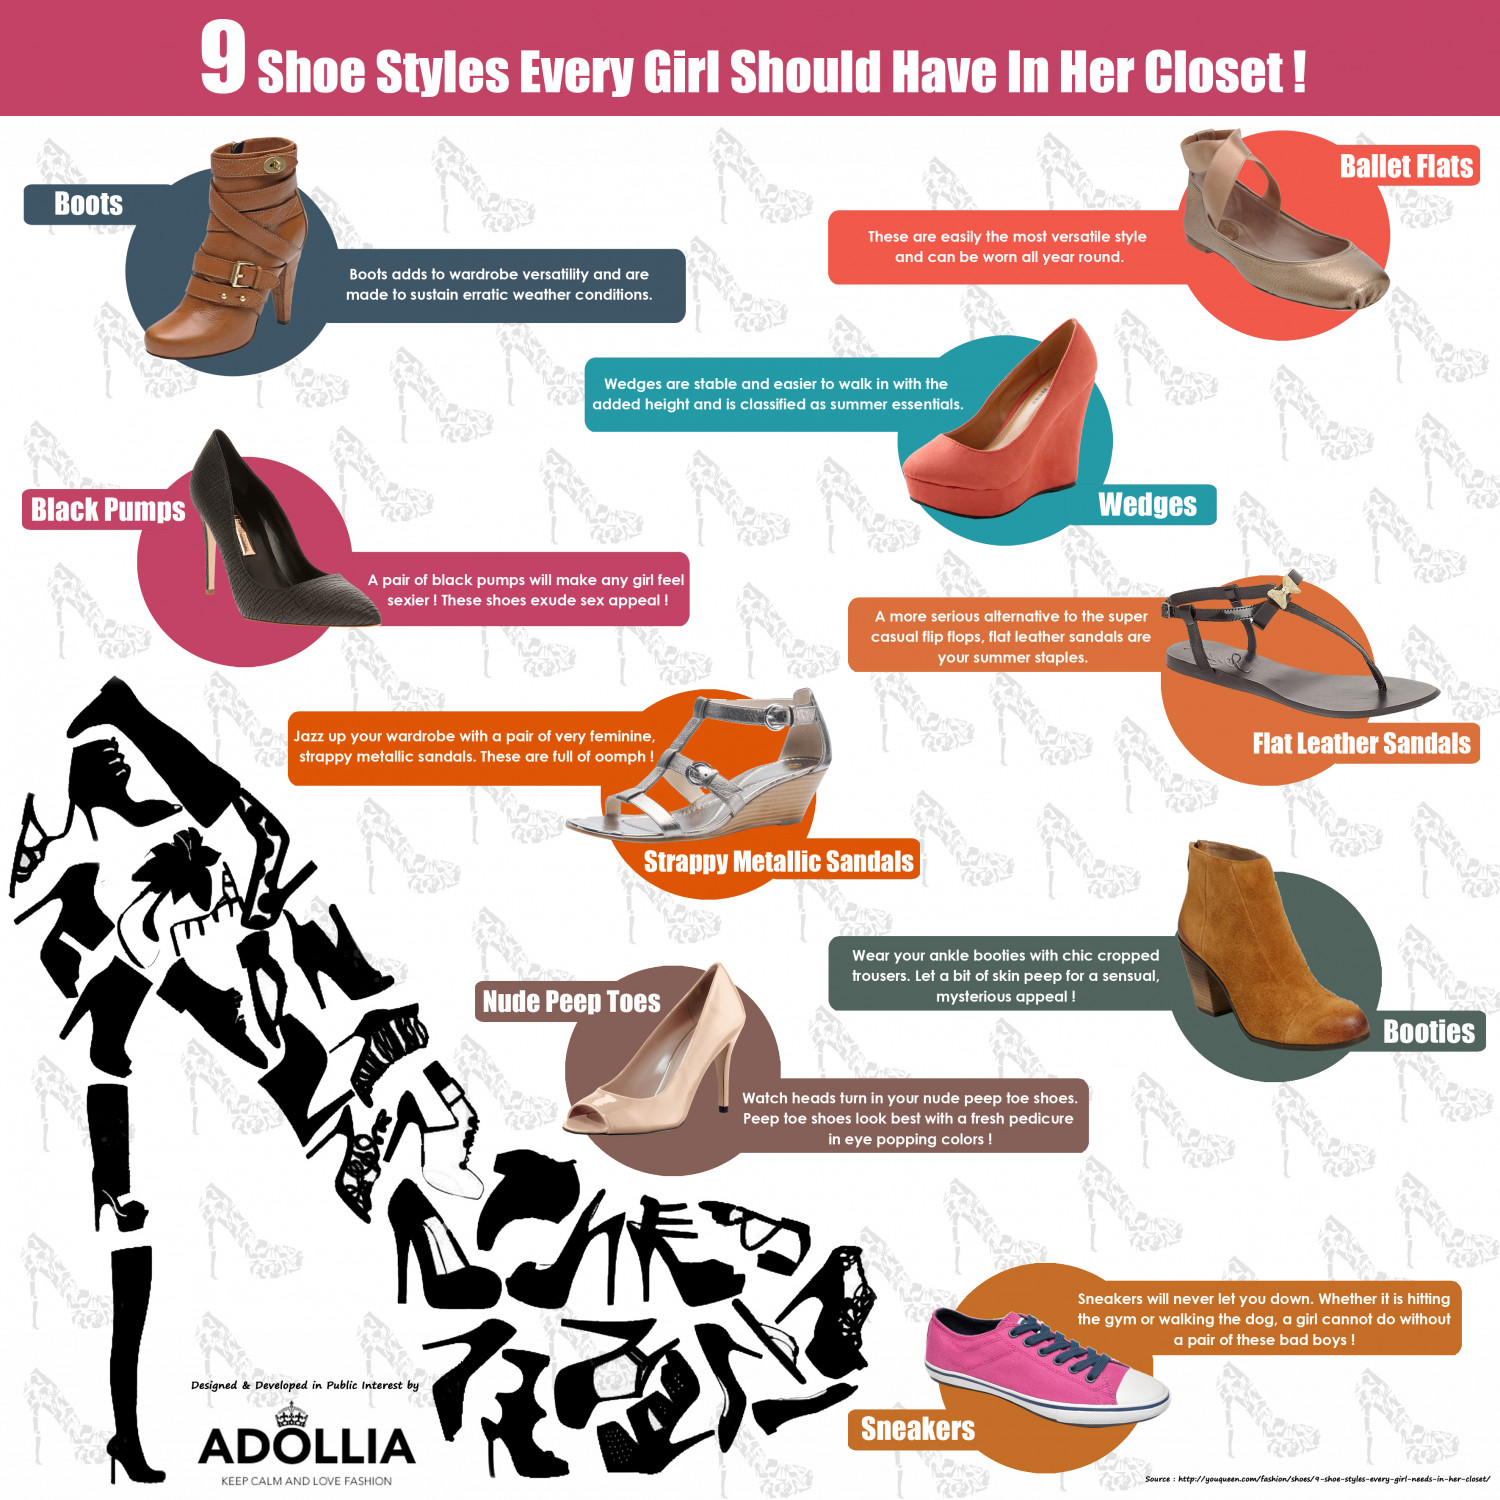 9 Shoe Styles Every Girl Should Have In Her Closet Infographic